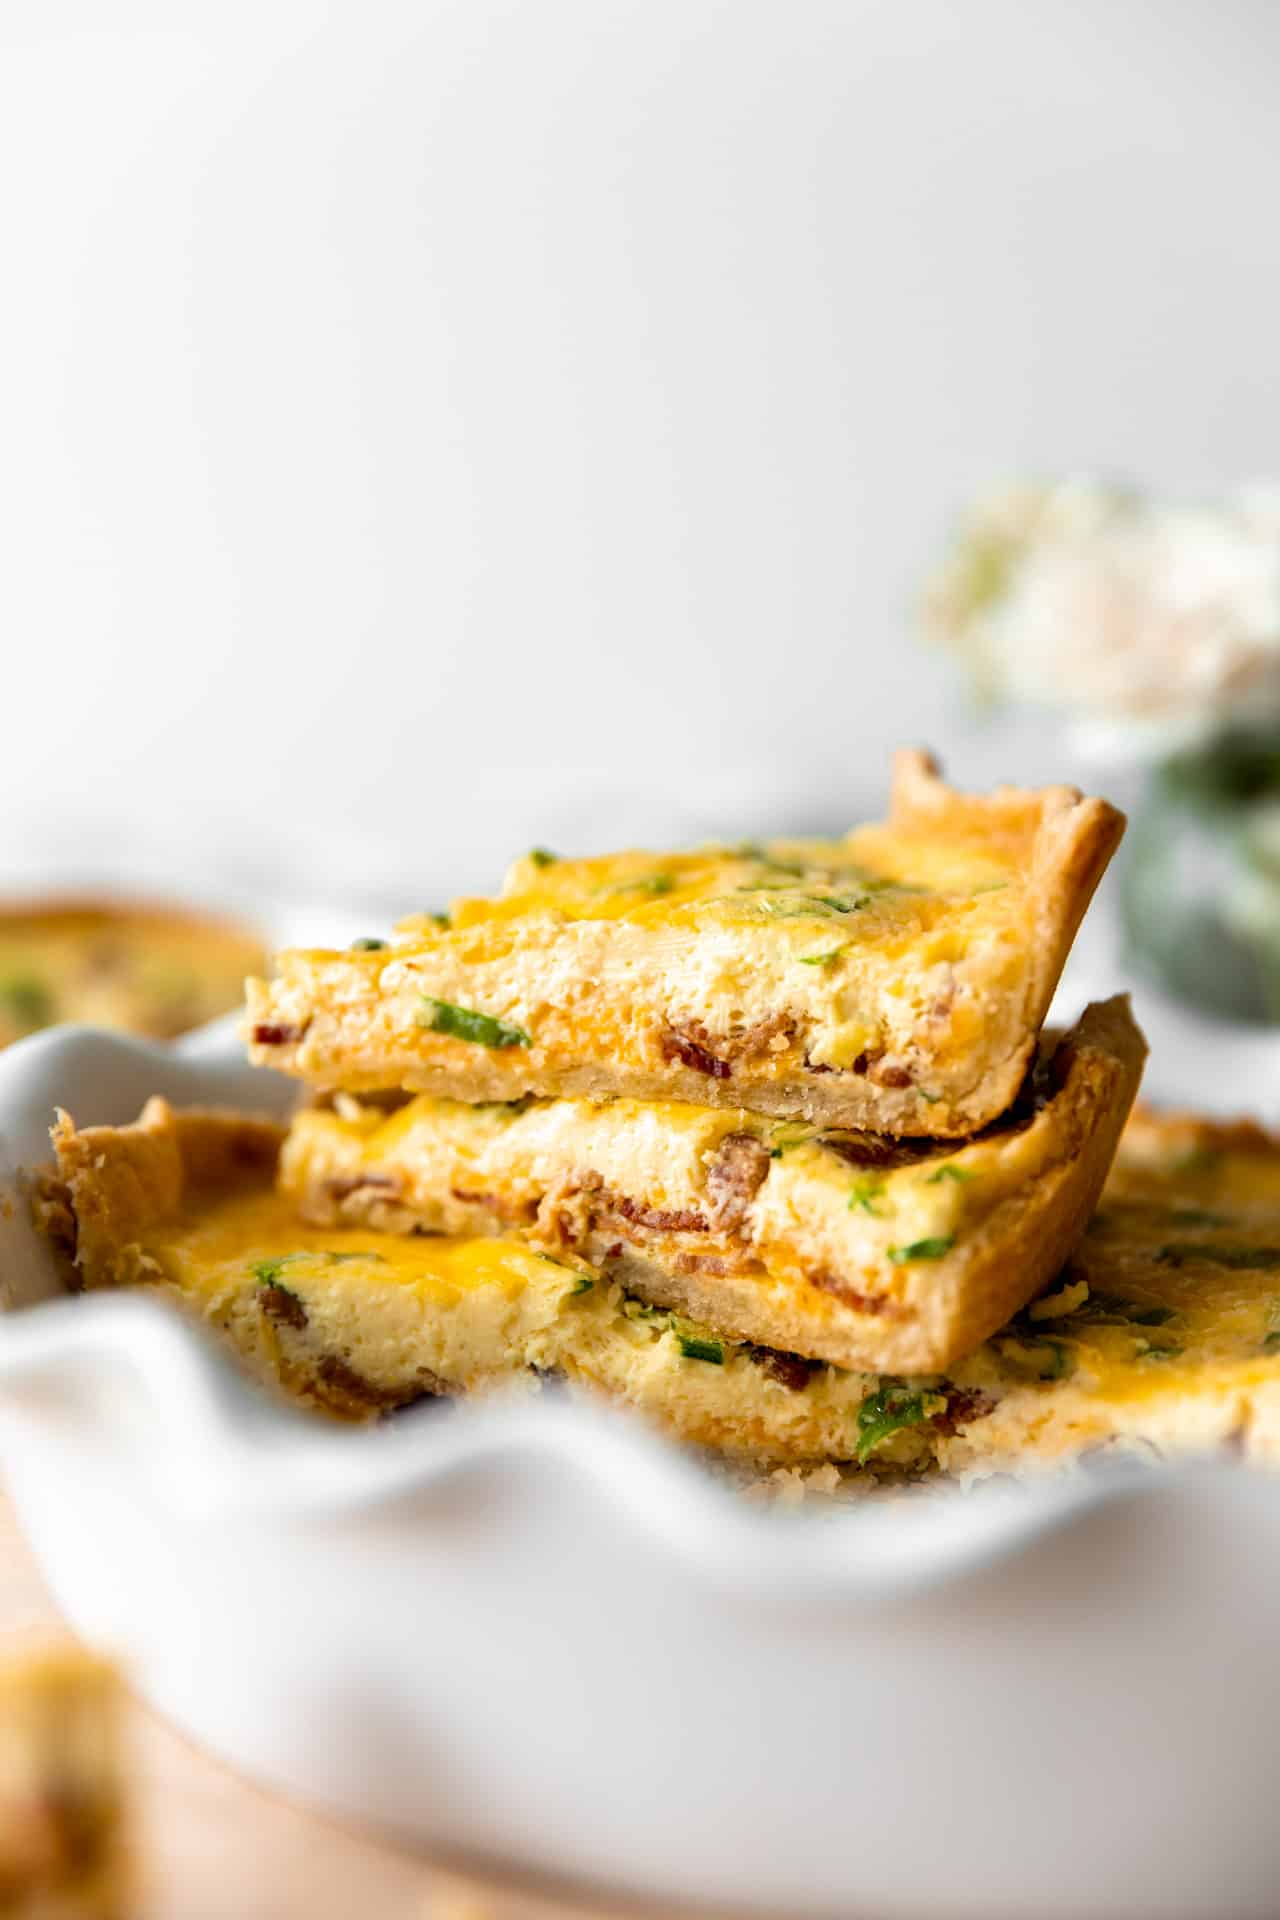 Stacked up slices of quiche in a pie dish.